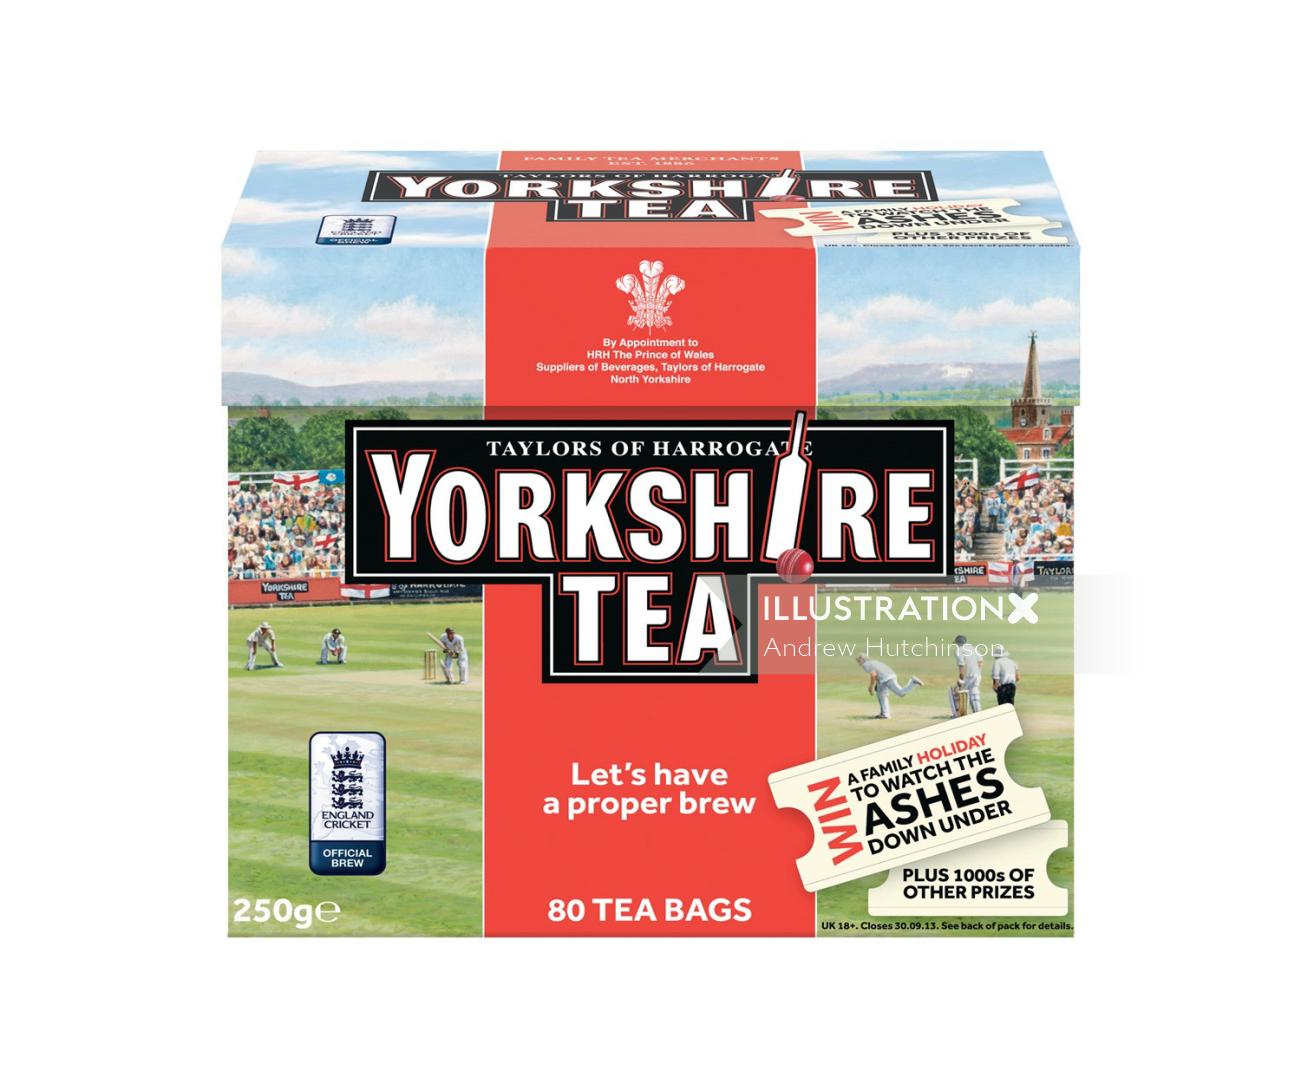 Yorkshire tea pack illustration by Andrew Hutchinson